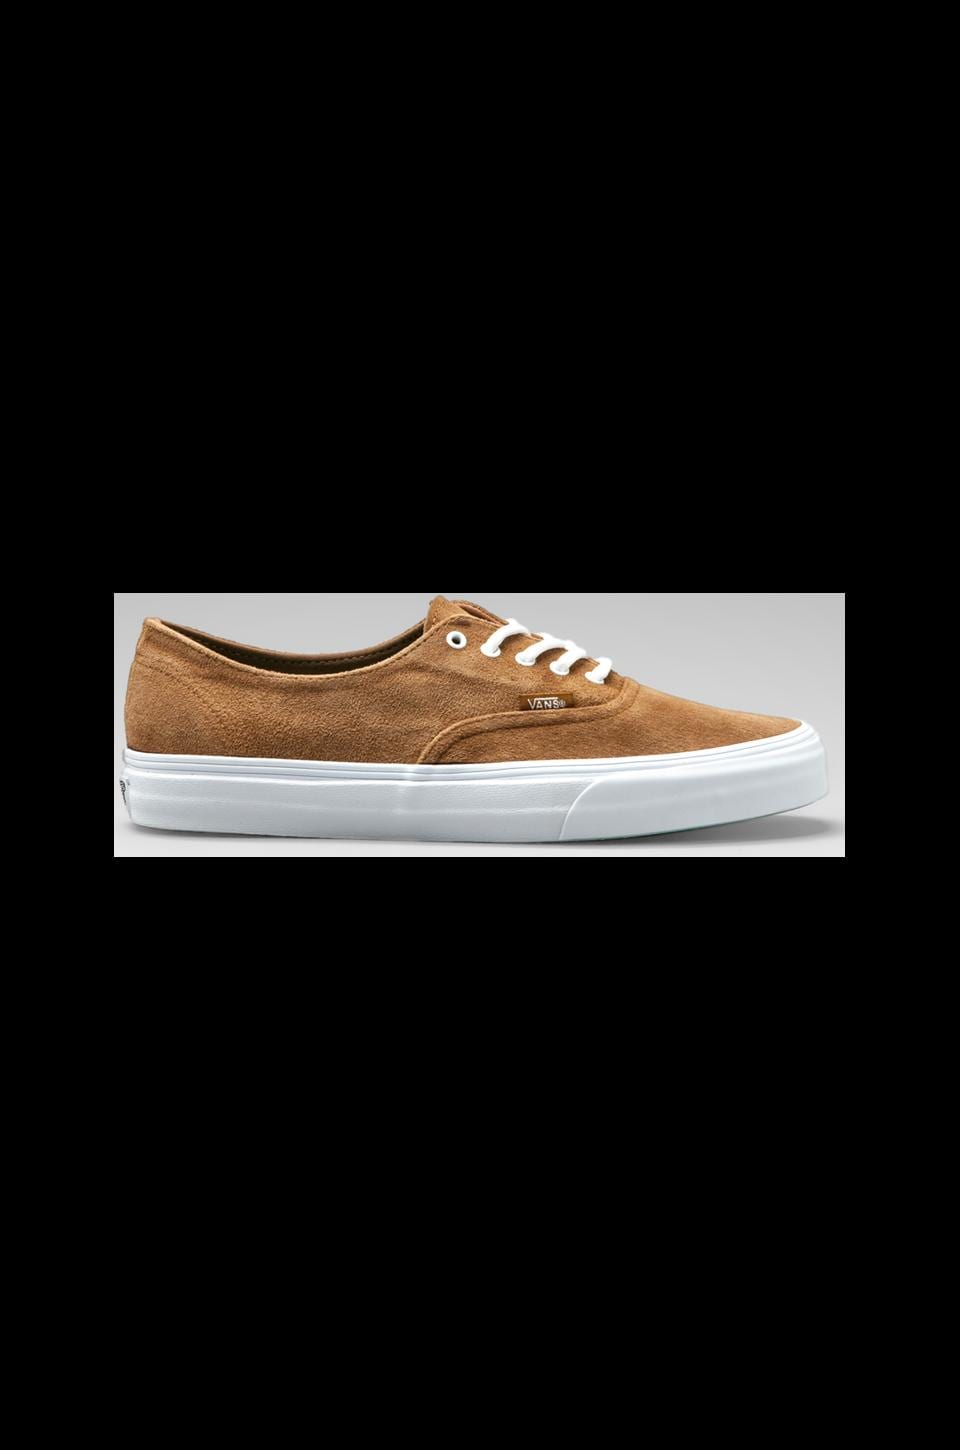 Vans California Authentic Decon Buck in Bronze Brown